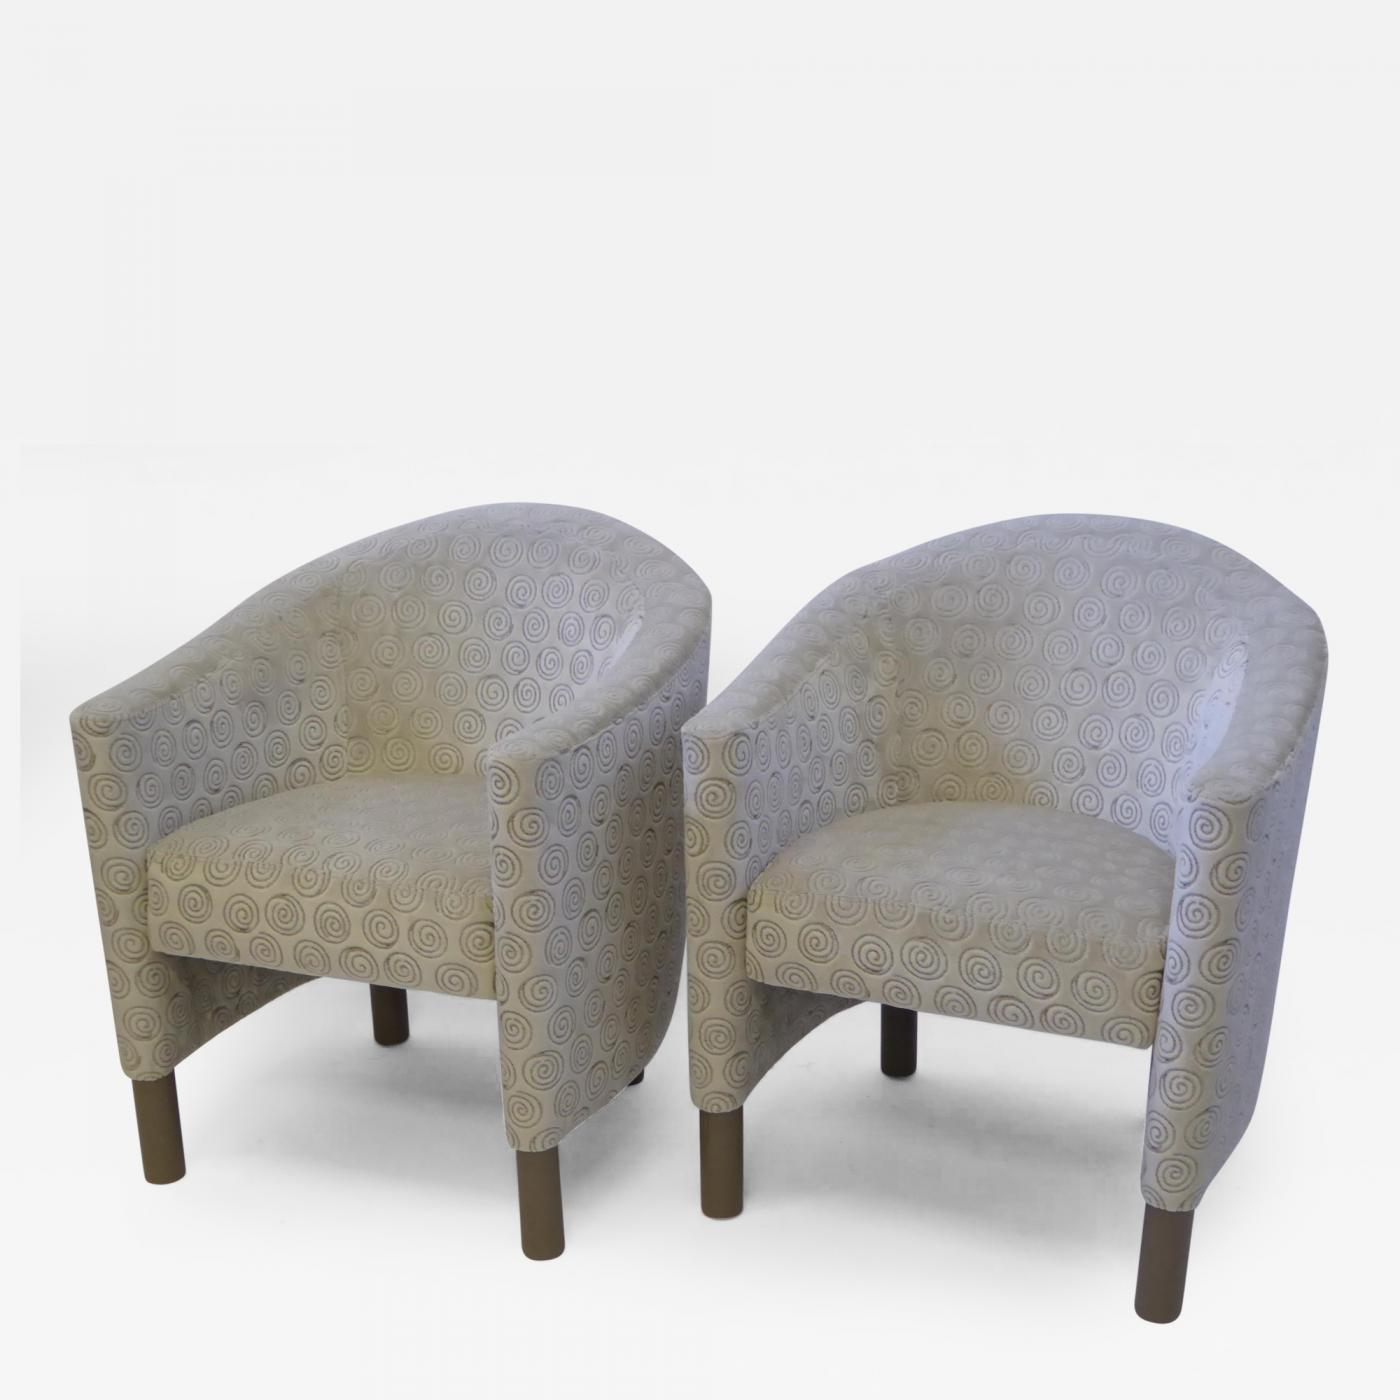 Brayton international collection pair of tub chairs by for International collection